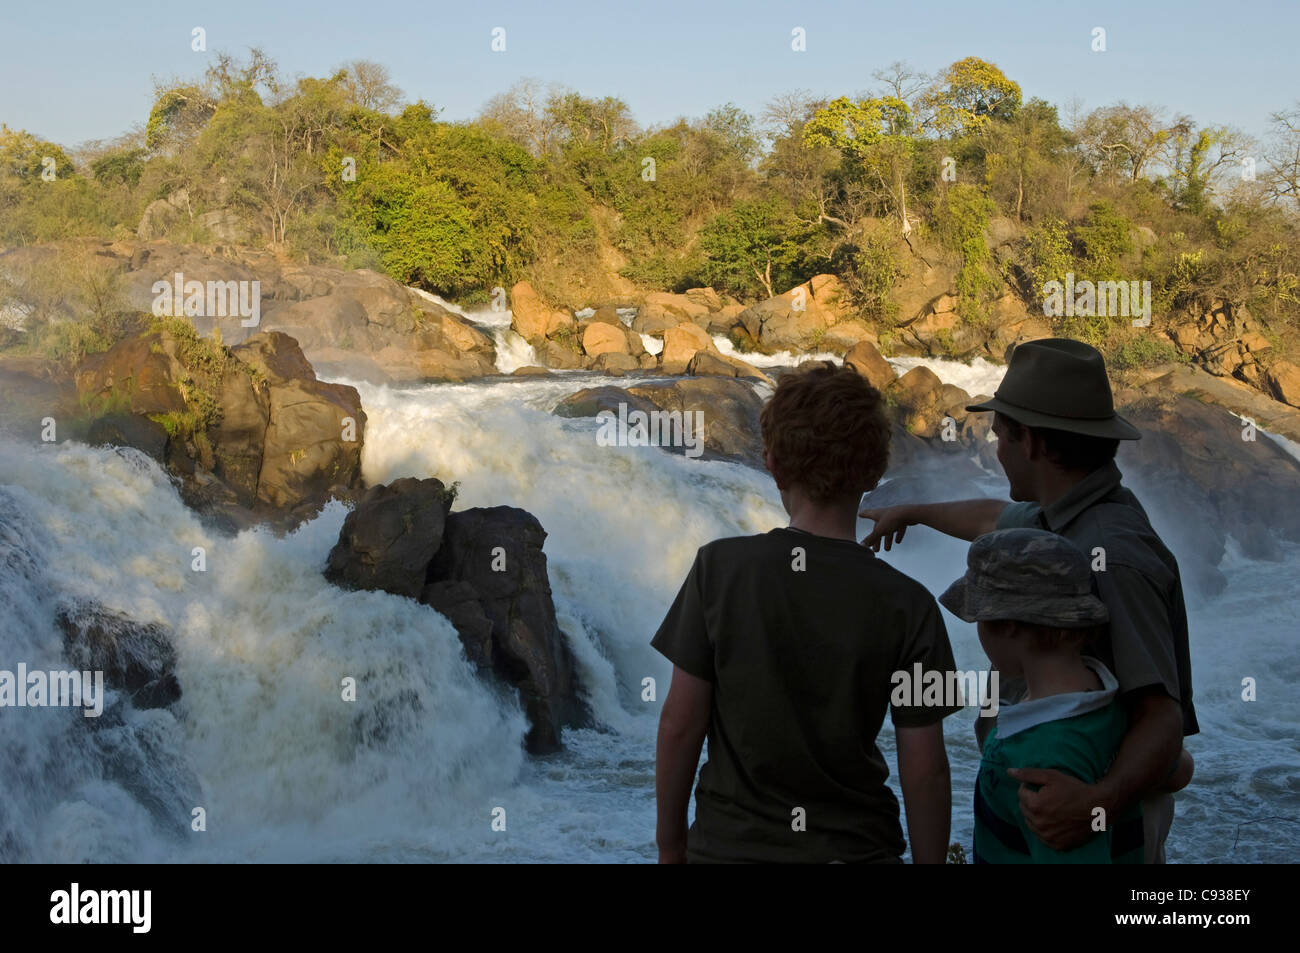 Malawi, Majete Wildlife Reserve.  A safari guide points out the Kapichira Falls to boys on a bush walk during a - Stock Image